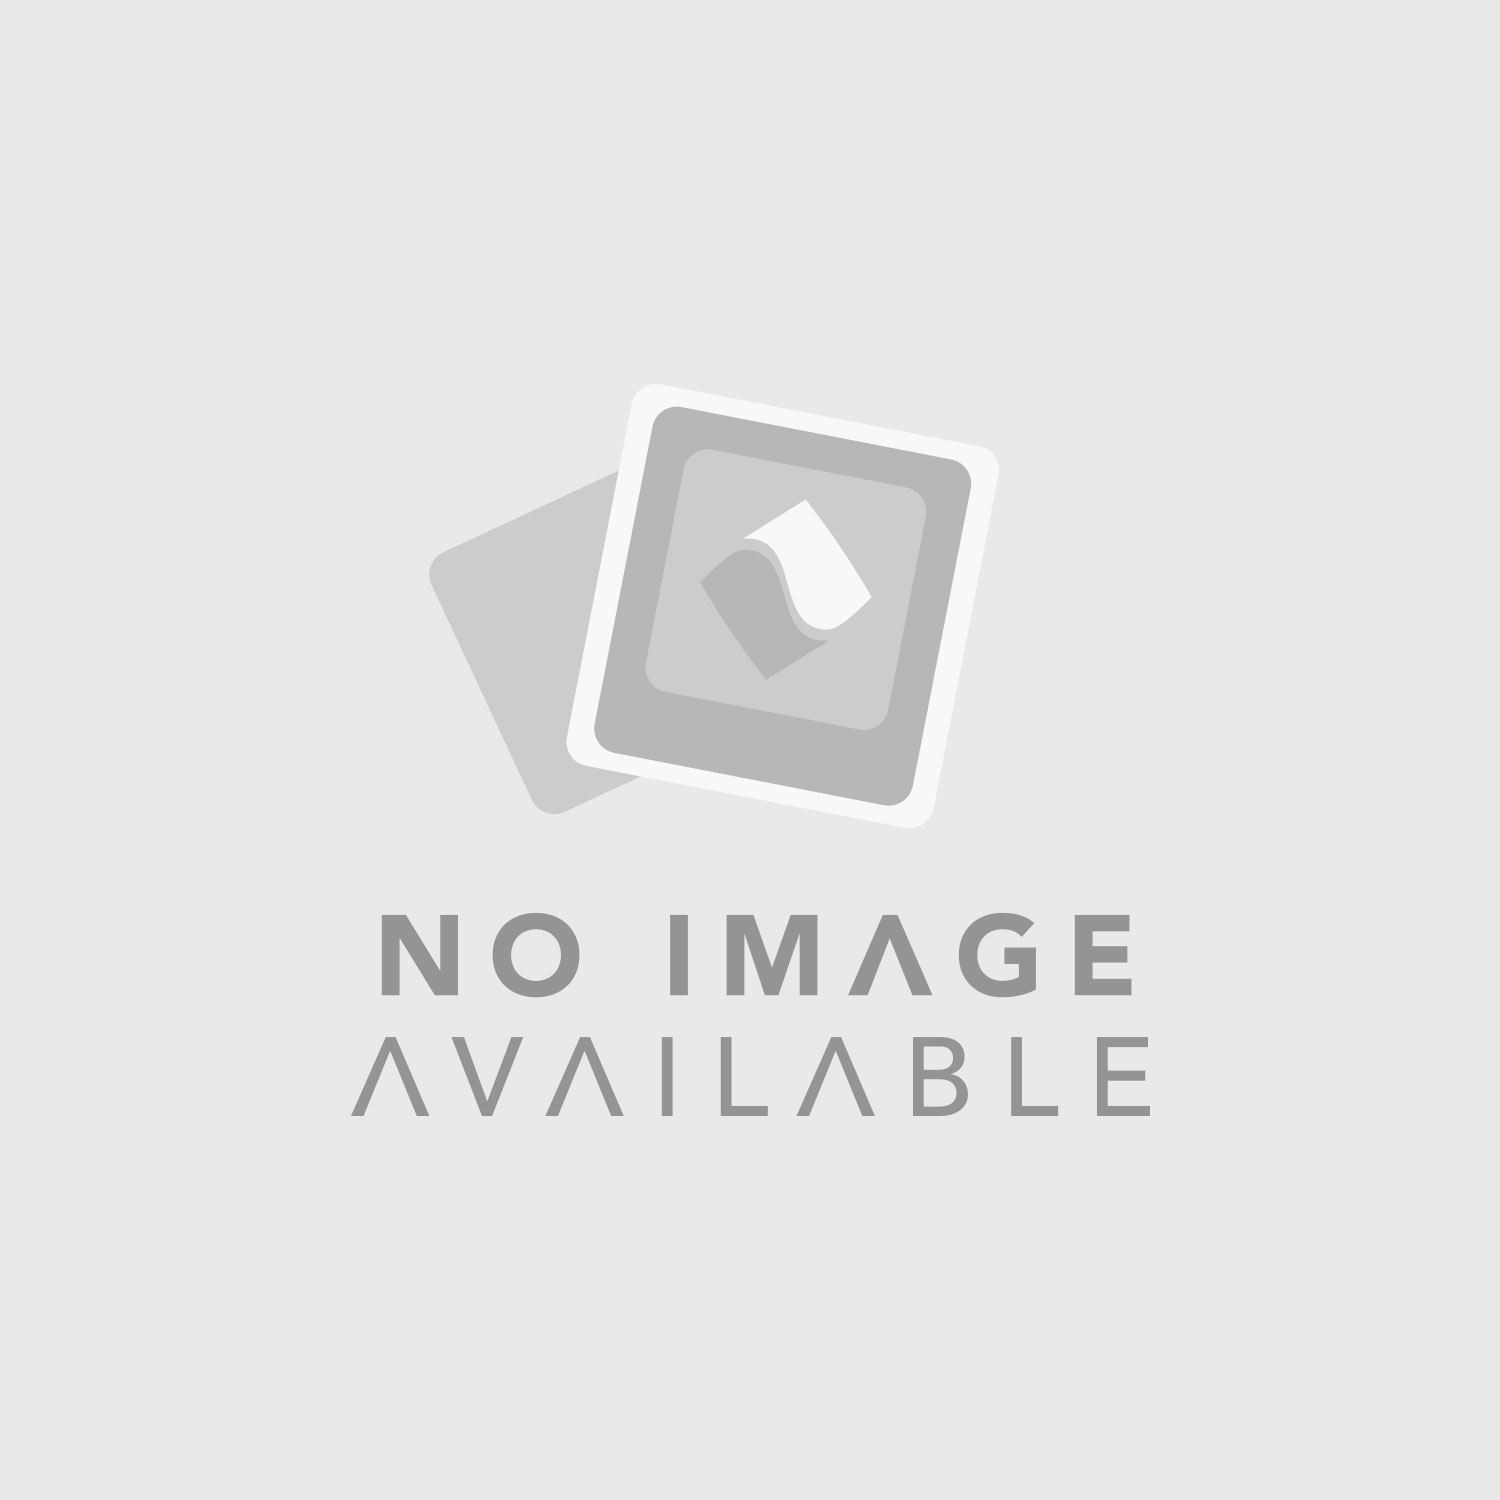 Pioneer DJ PLX-500-K High-Torque, Direct-Drive Turntable (Black)